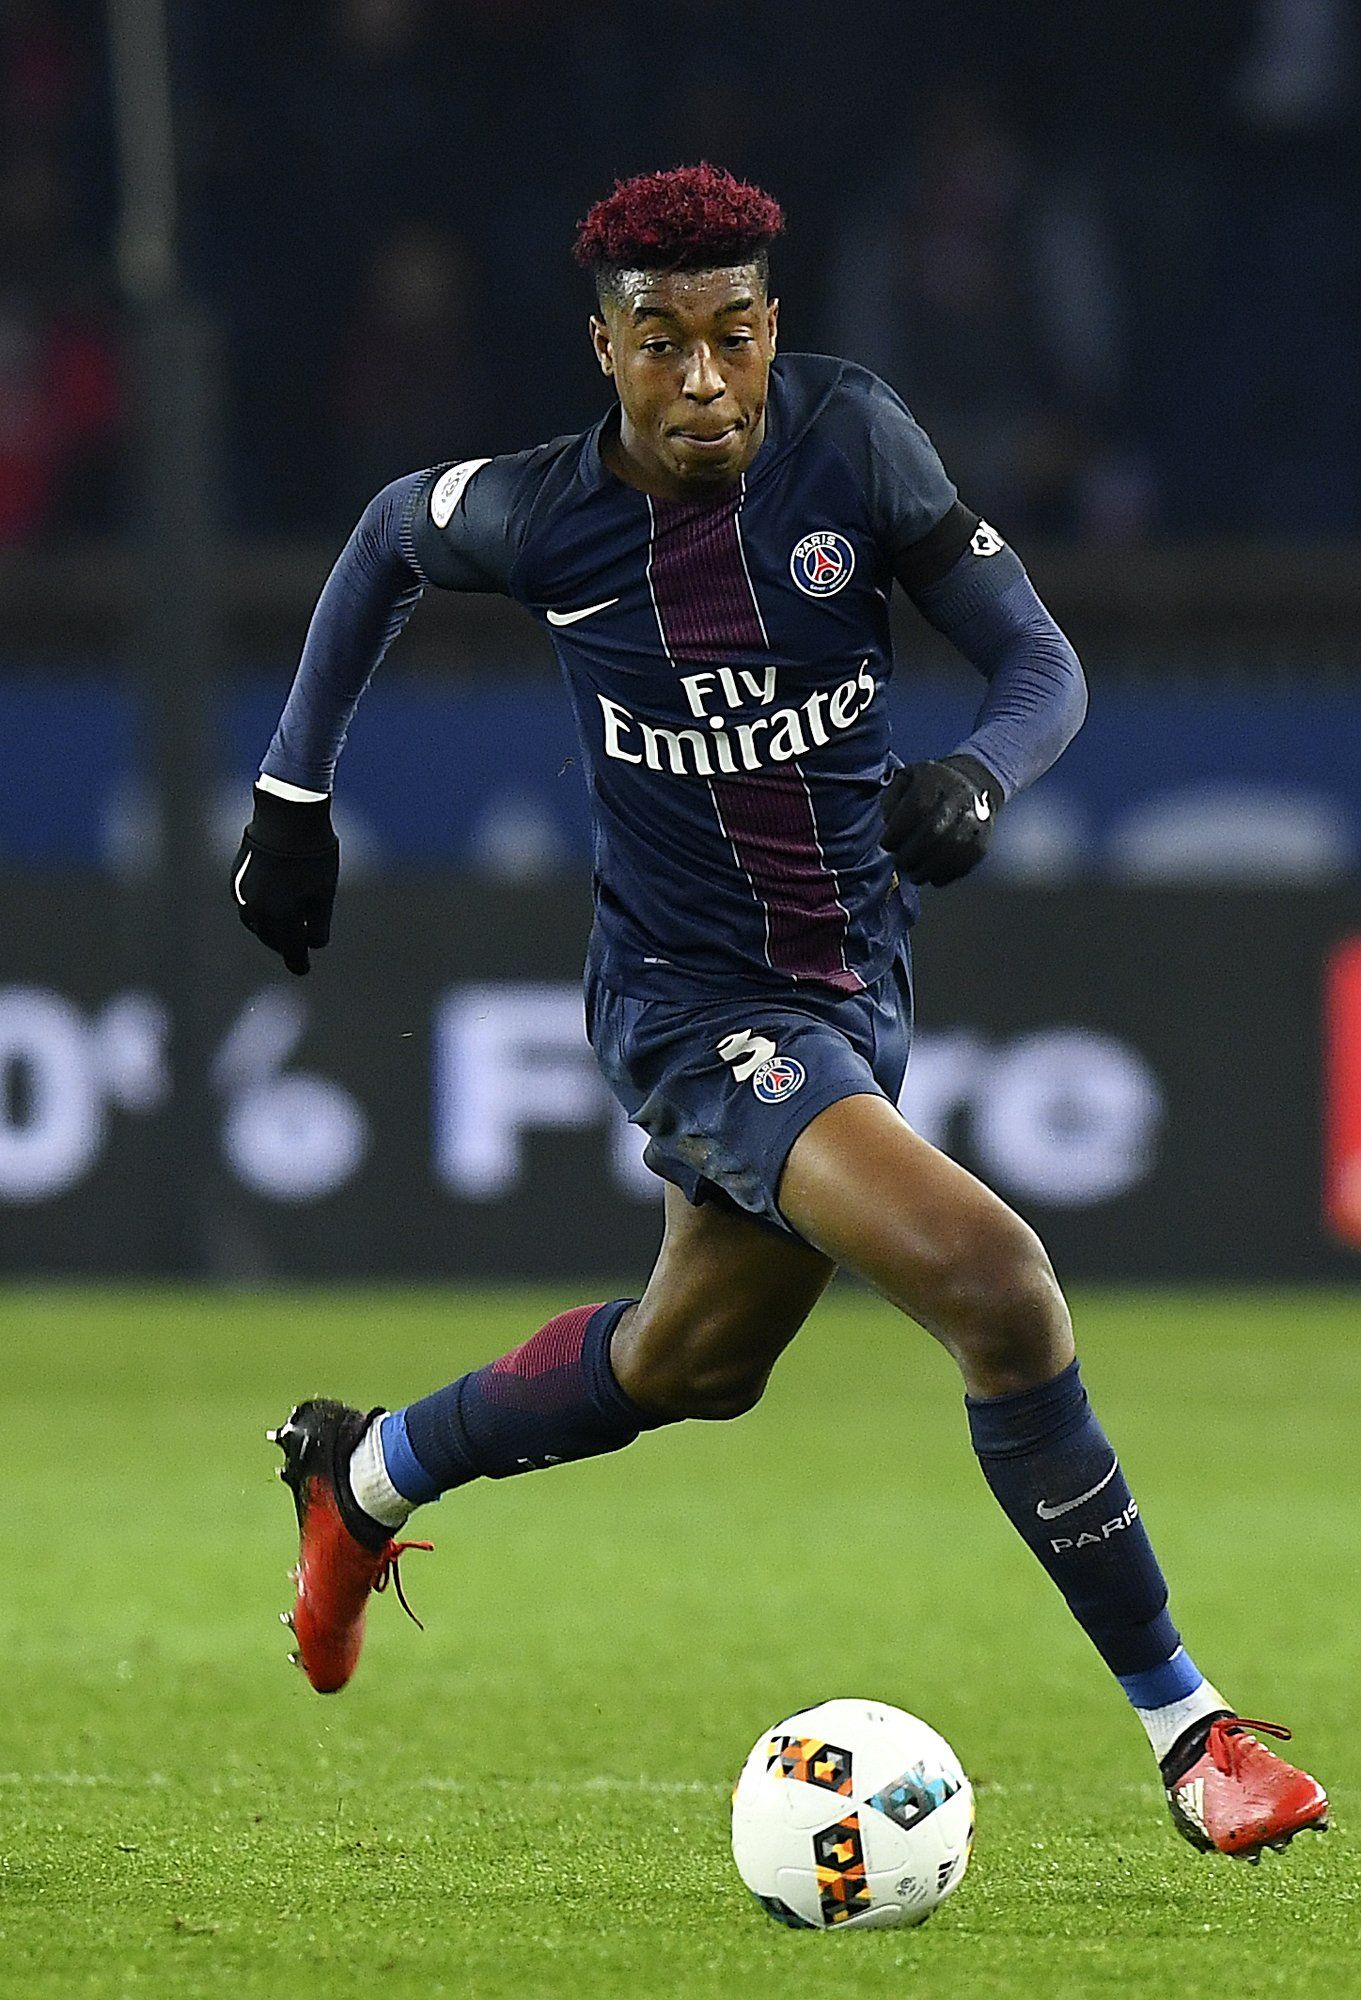 Cute Cartoon Live Wallpaper Presnel Kimpembe Wallpapers